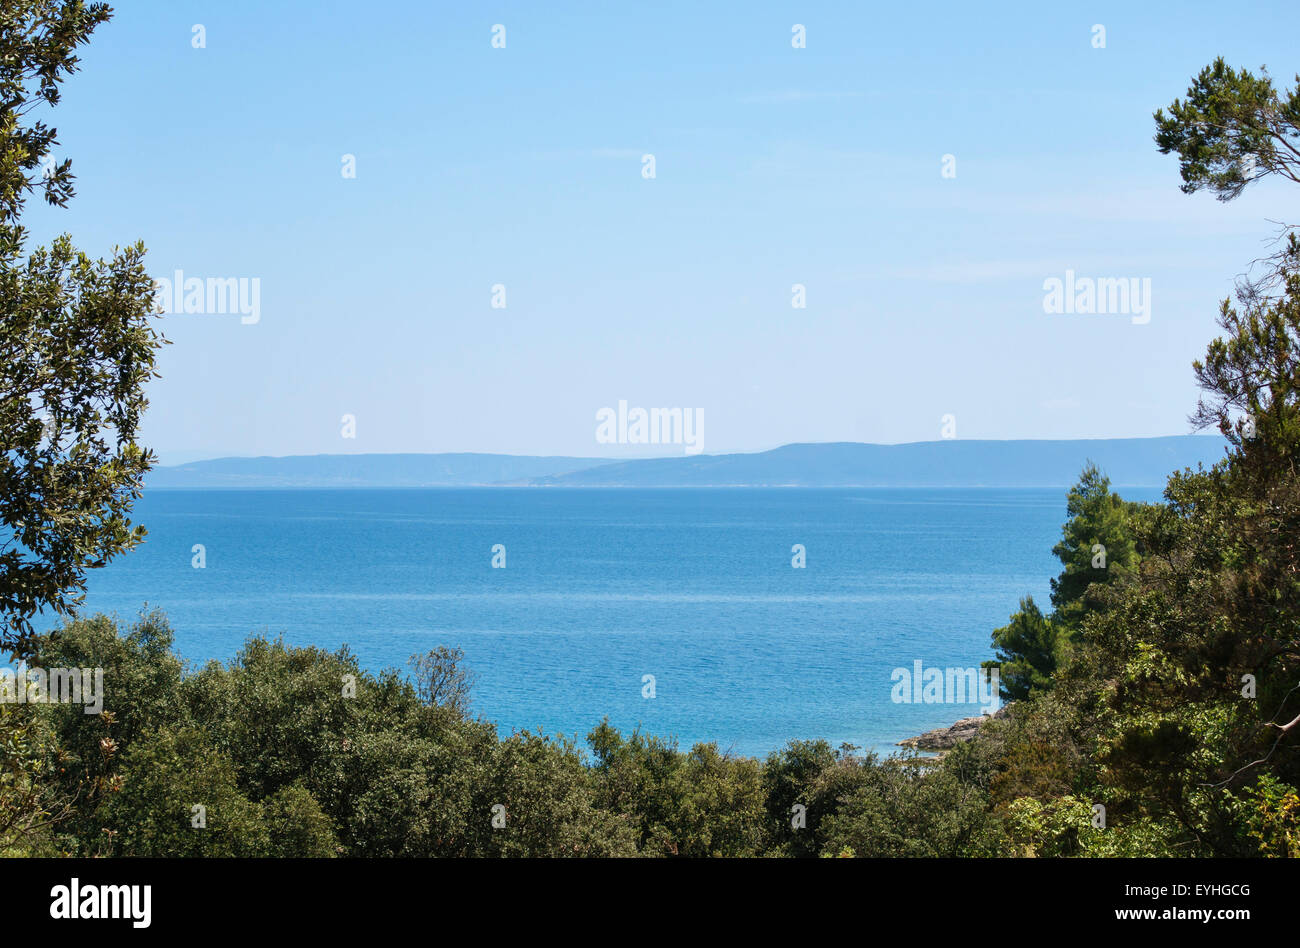 Istria, Croatia. A view from Duga Uvala across the Adriatic towards the distant island of Cres in the Kvarner Gulf - Stock Image